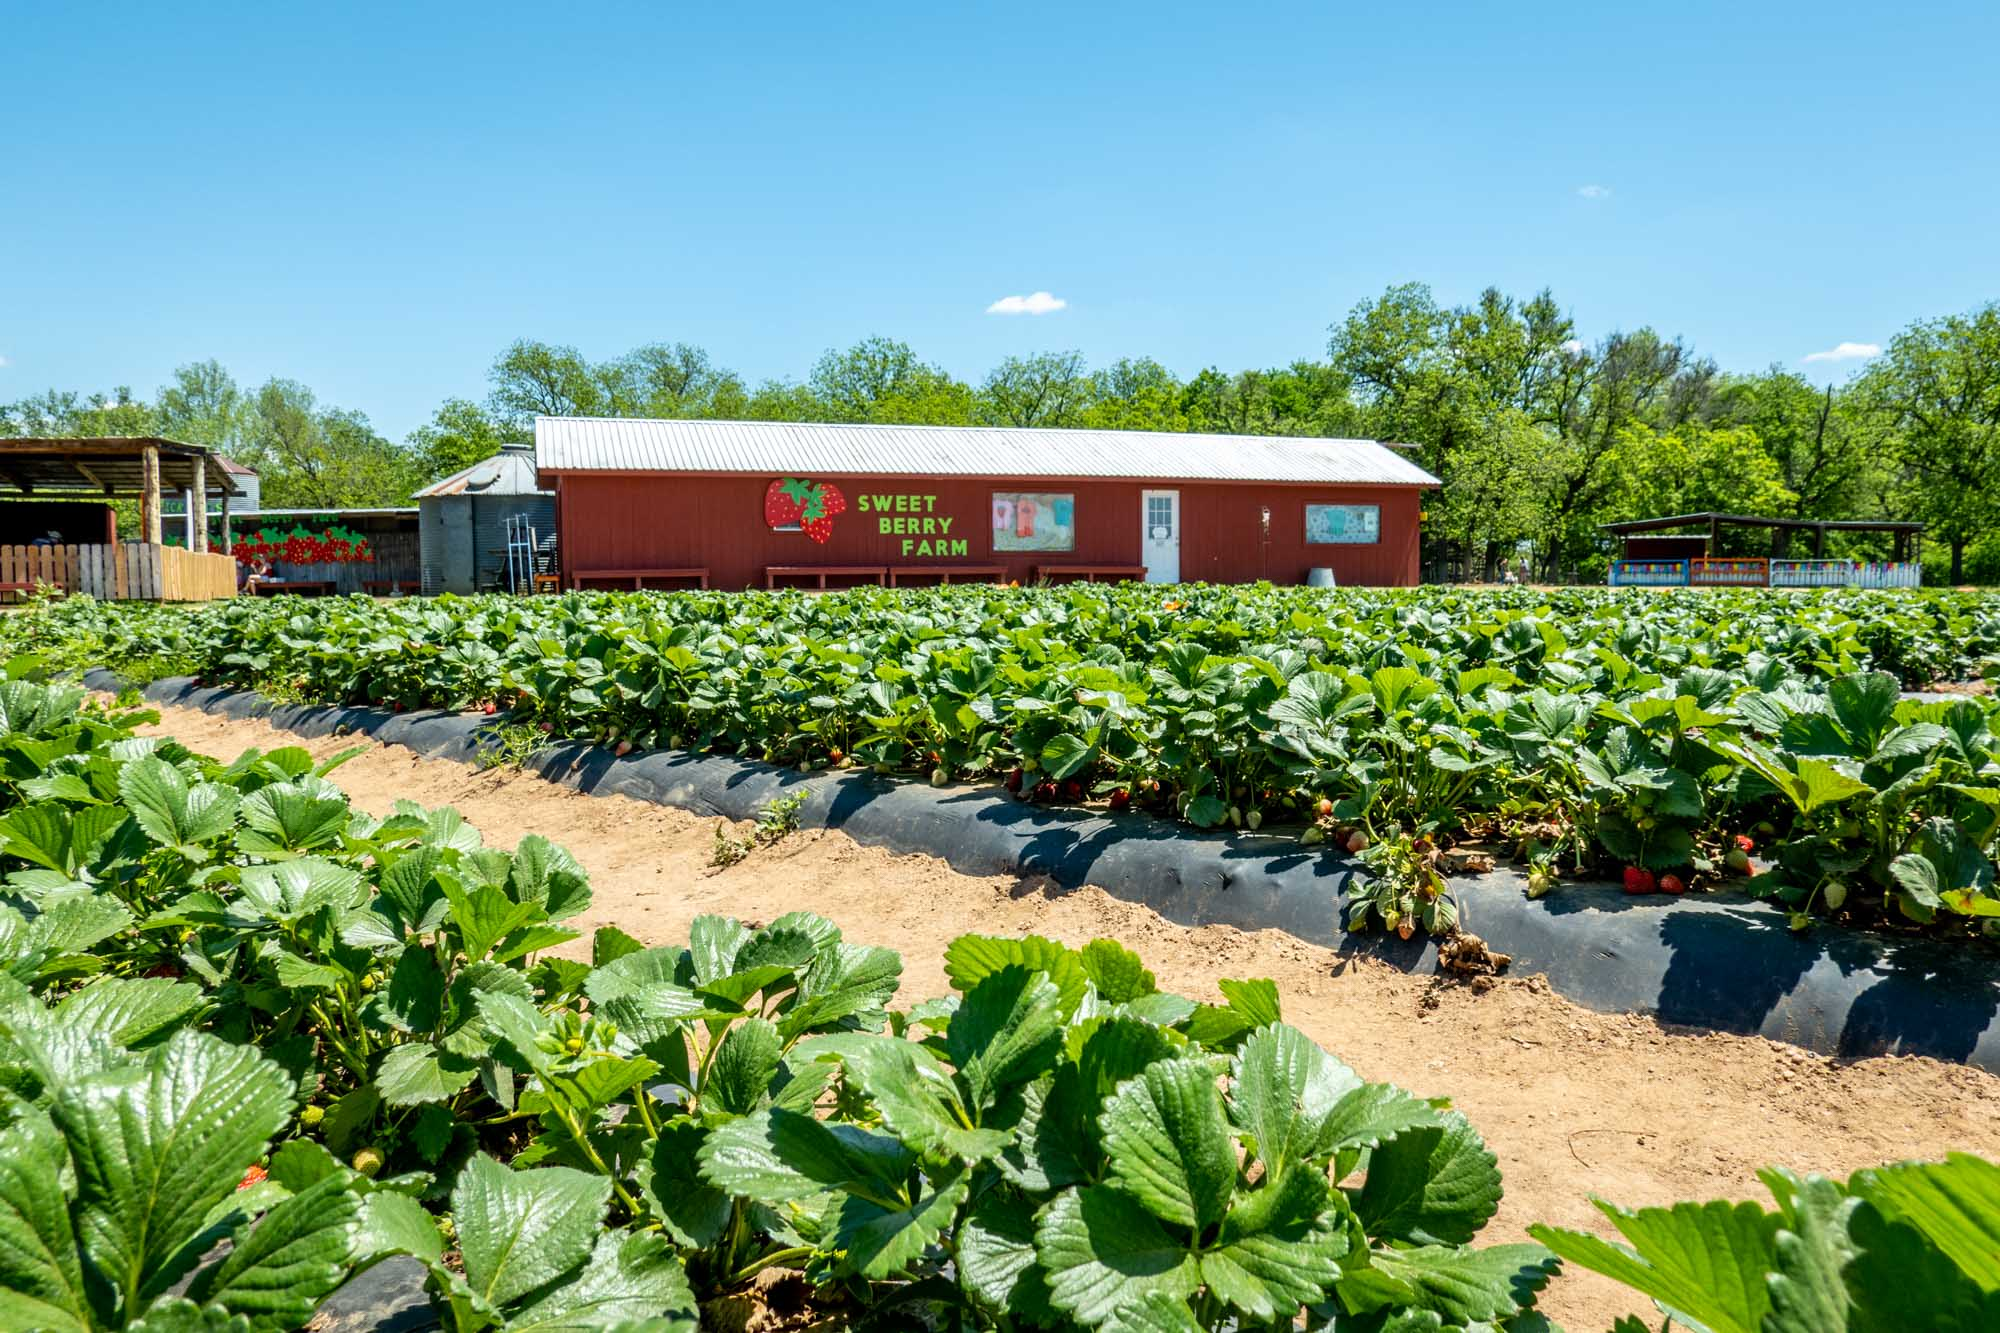 """Rows of strawberry plants in front of a red barn with a sign for """"Sweet Berry Farm"""""""